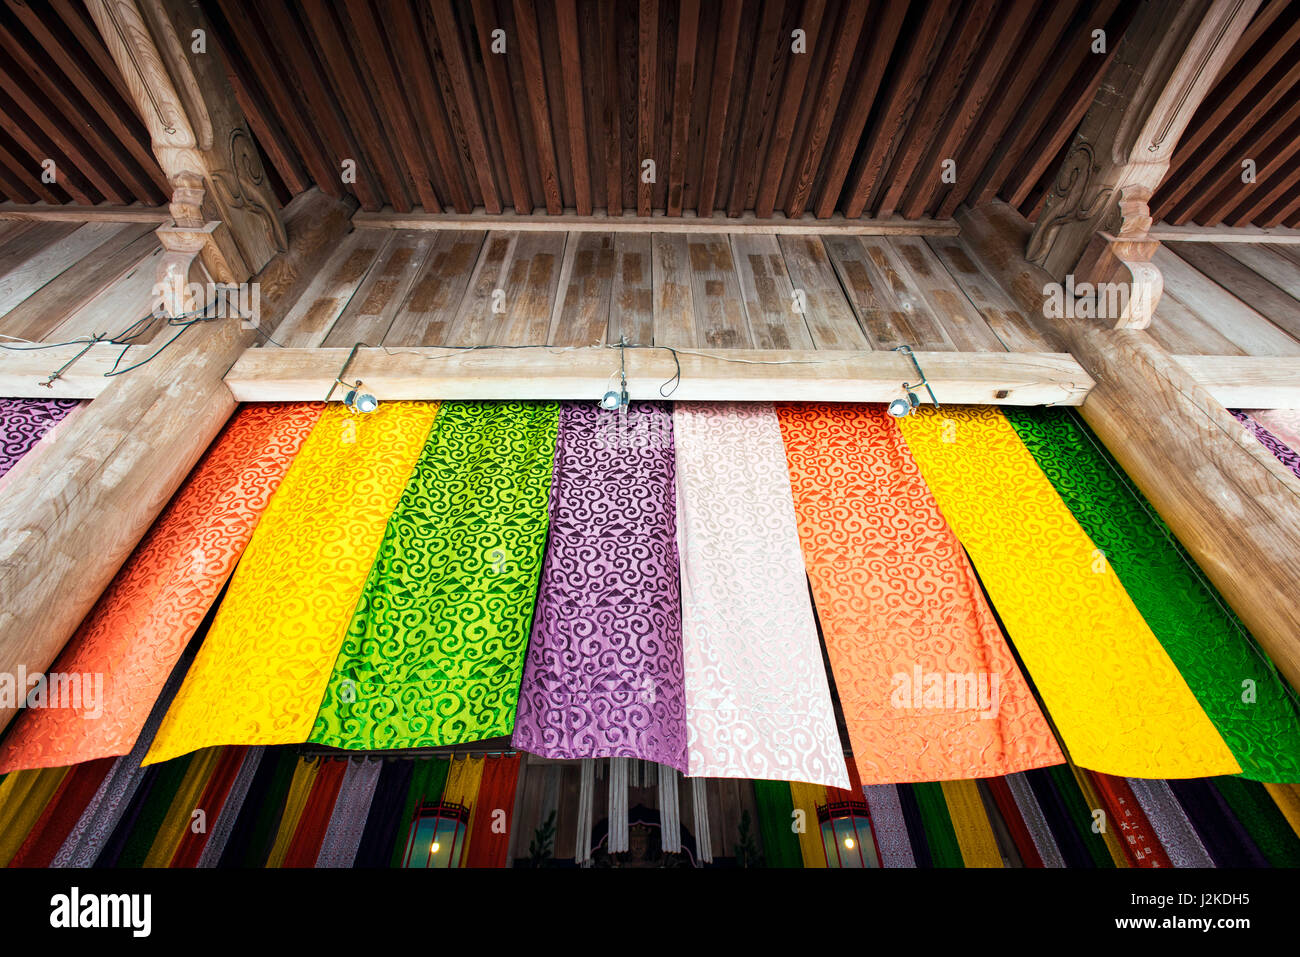 Curtains covering the front of the Hatto in Kencho-Ji Temple, Kamakura, Japan - Stock Image